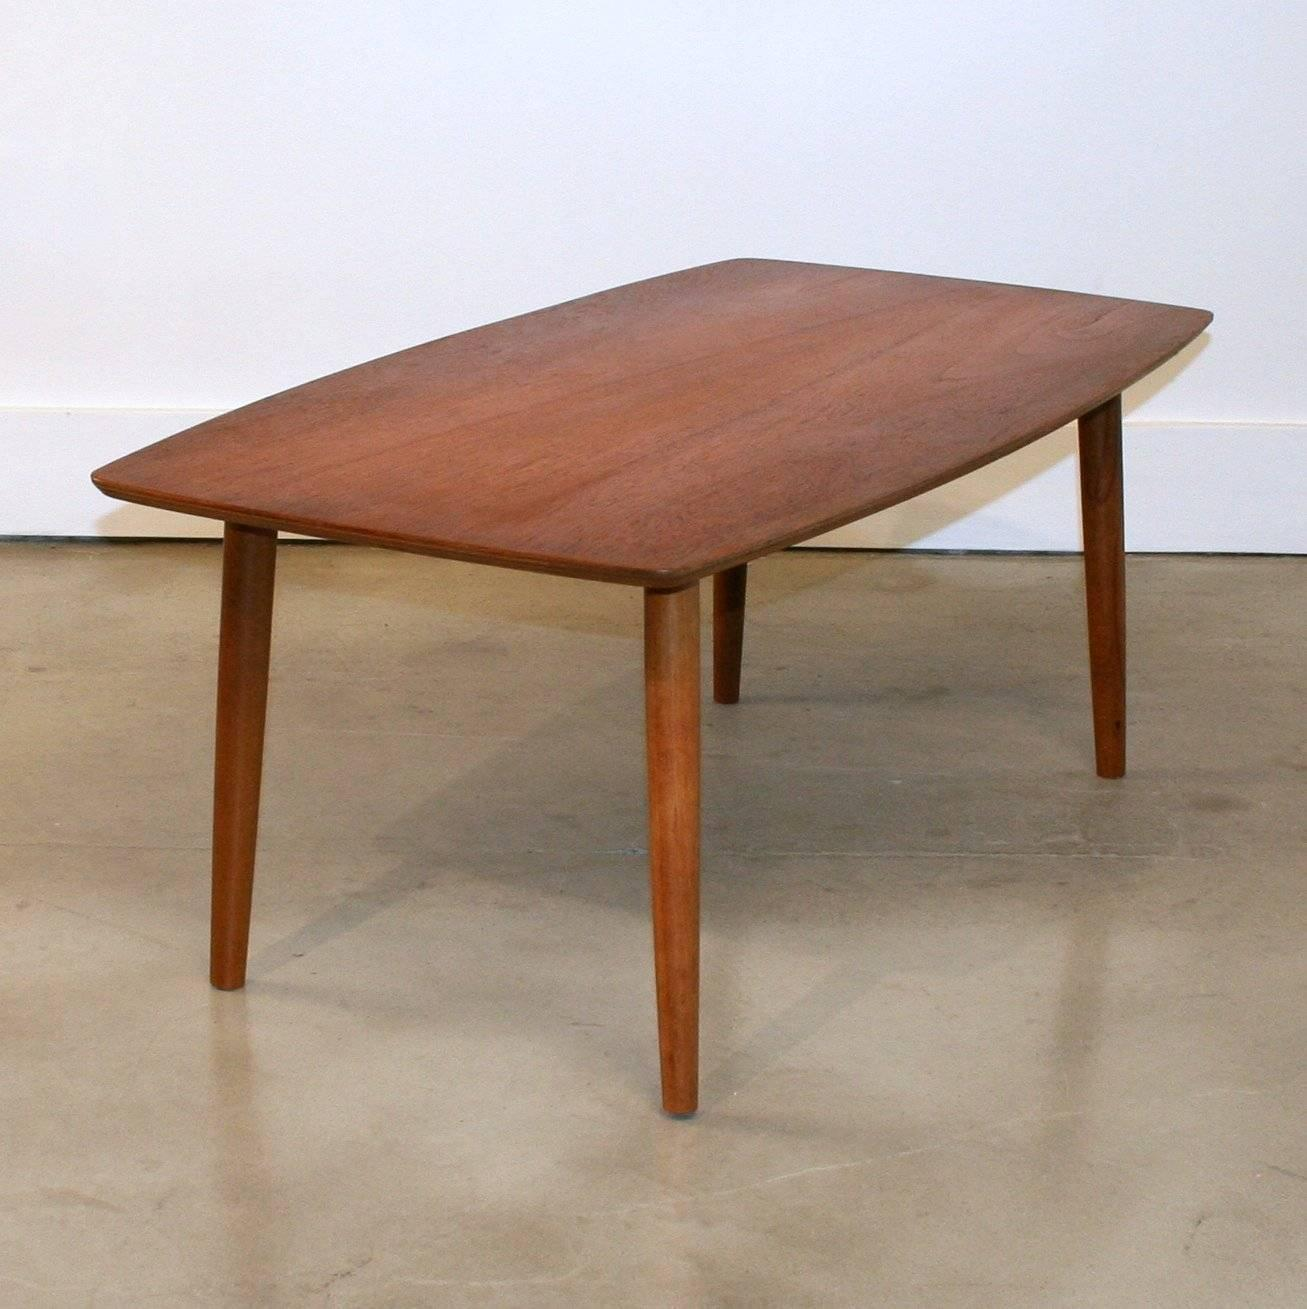 Vintage danish small scale teak coffee table at 1stdibs for Coffee tables vancouver canada